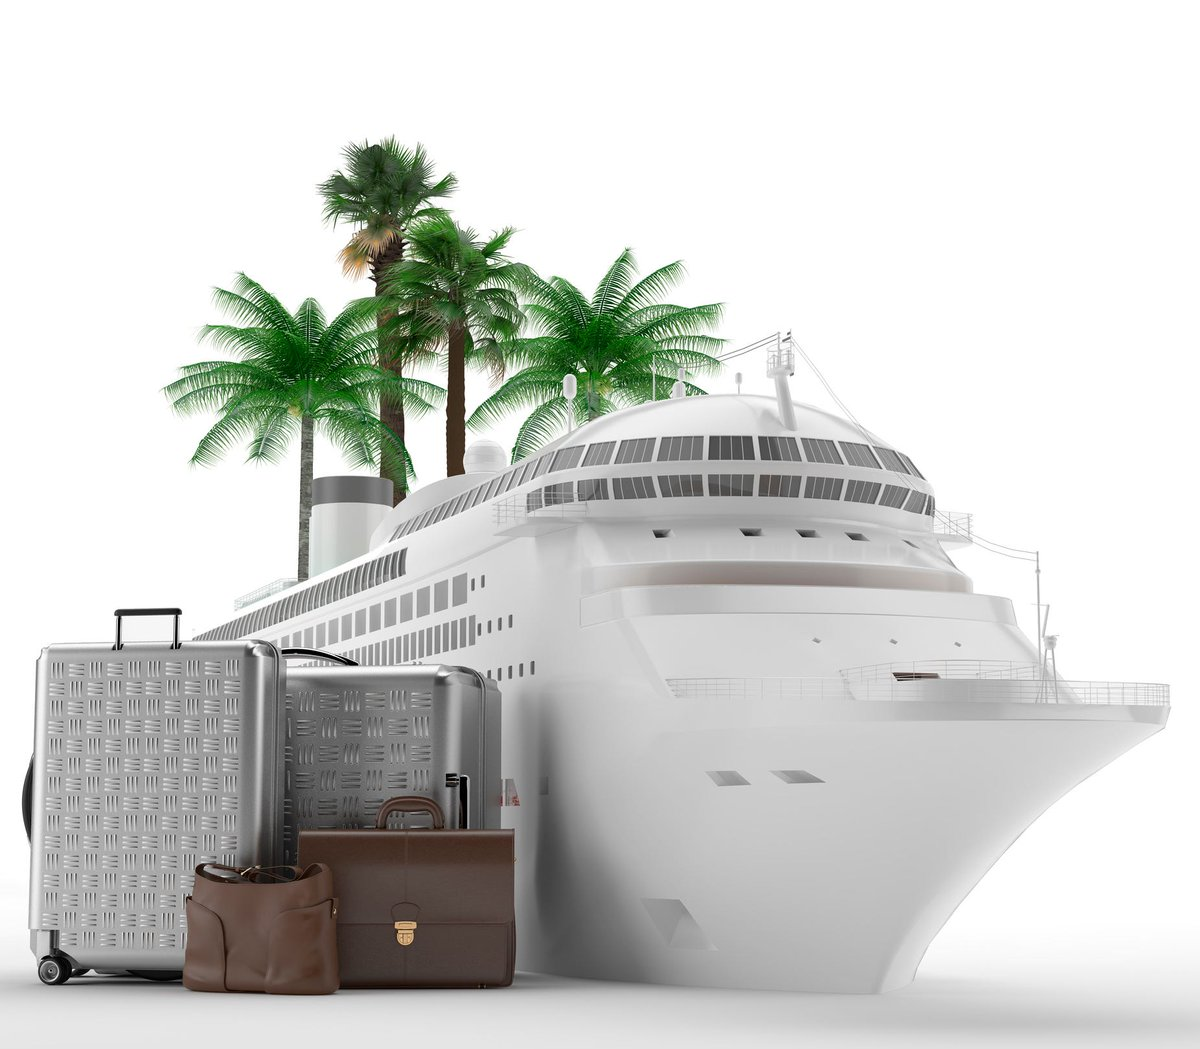 Get ideas for exactly what you should pack on your #cruise. #traveltips